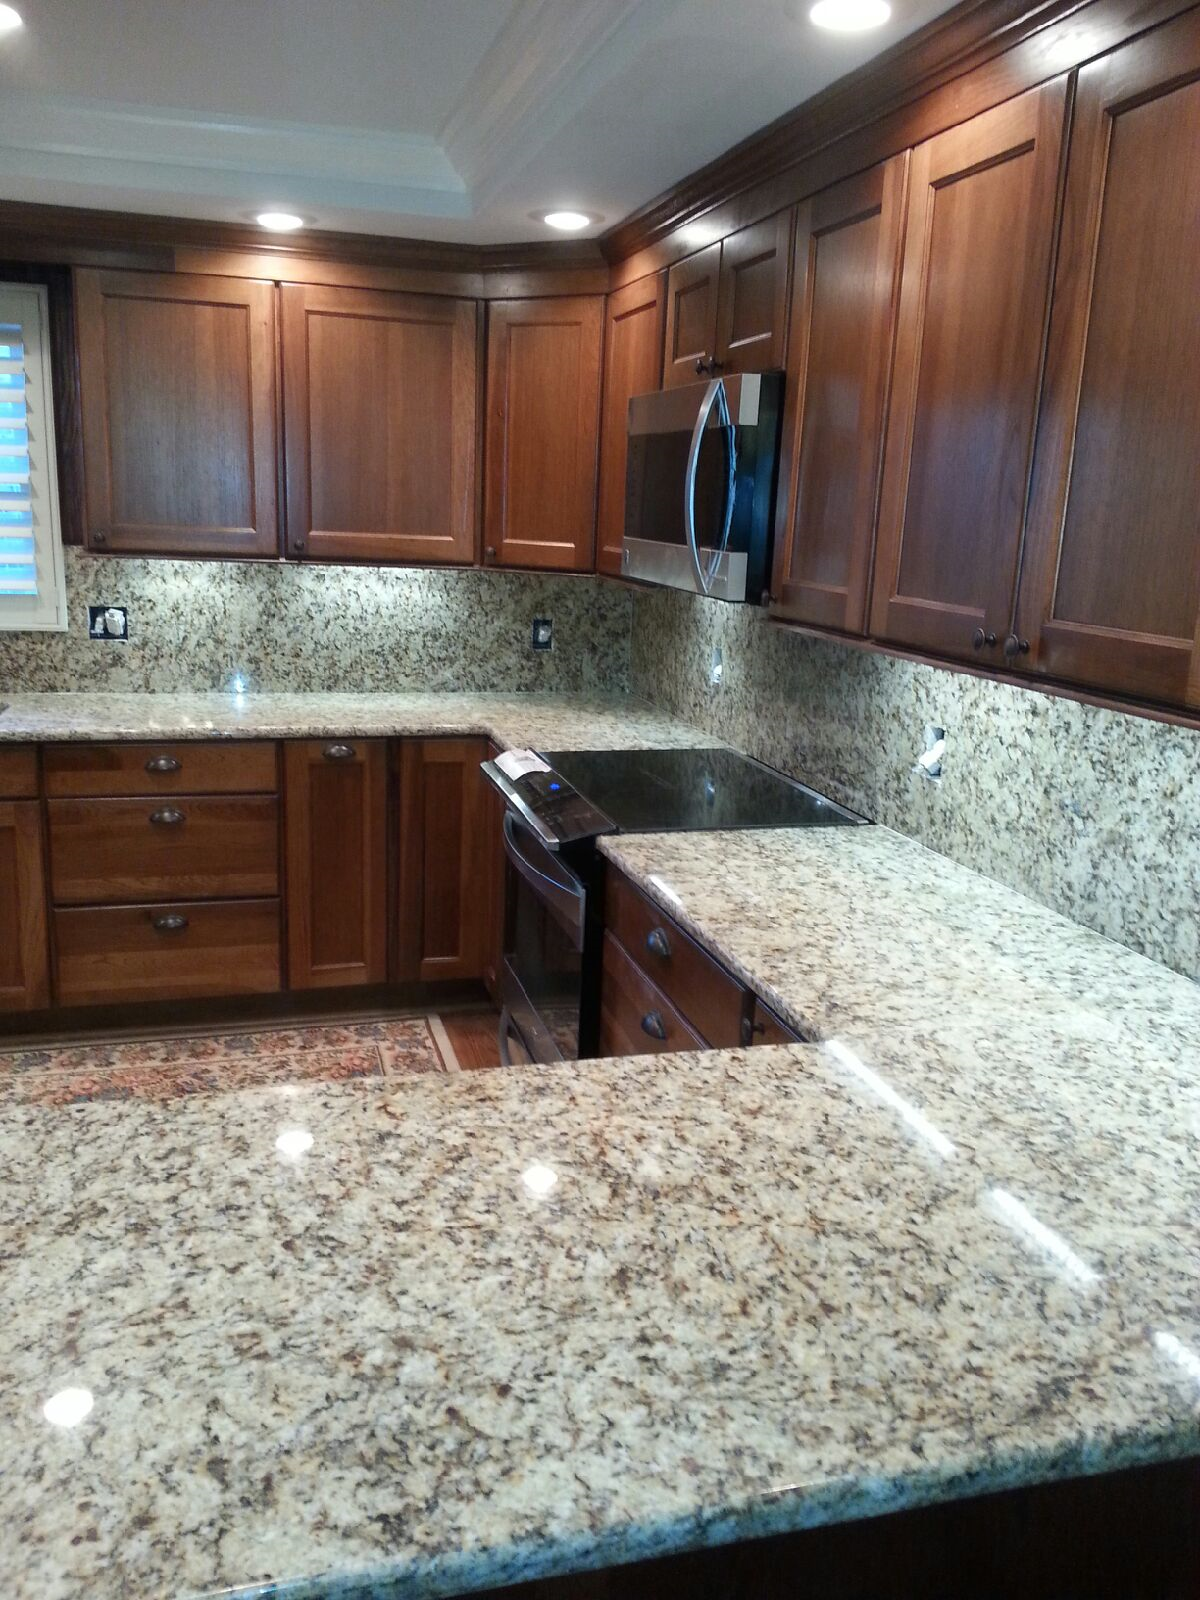 Granite counter tops can look sharp - but how do you choose the right ...